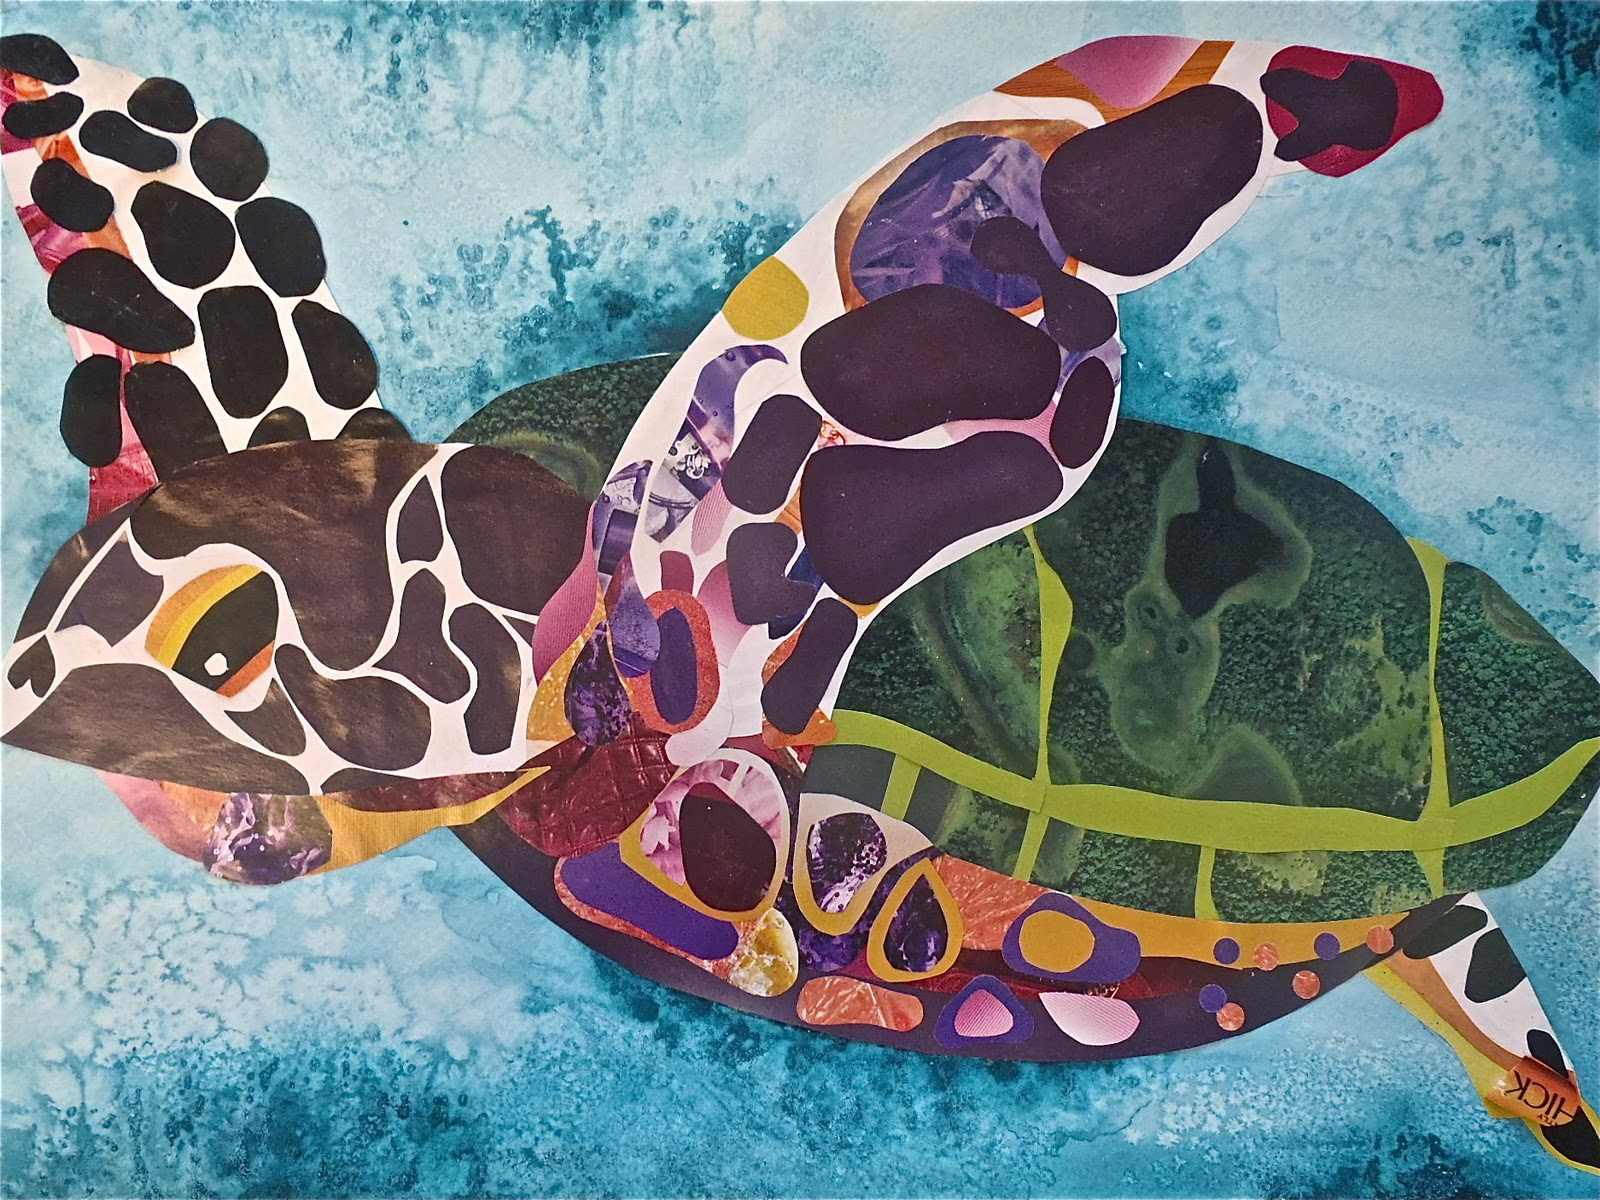 http://1.bp.blogspot.com/__qGPPbf0Yws/TT2RrrY54RI/AAAAAAAAALE/YCpn7M_ZqPE/s1600/The+Sea+Turtle%252C+Mixed+Media.JPG